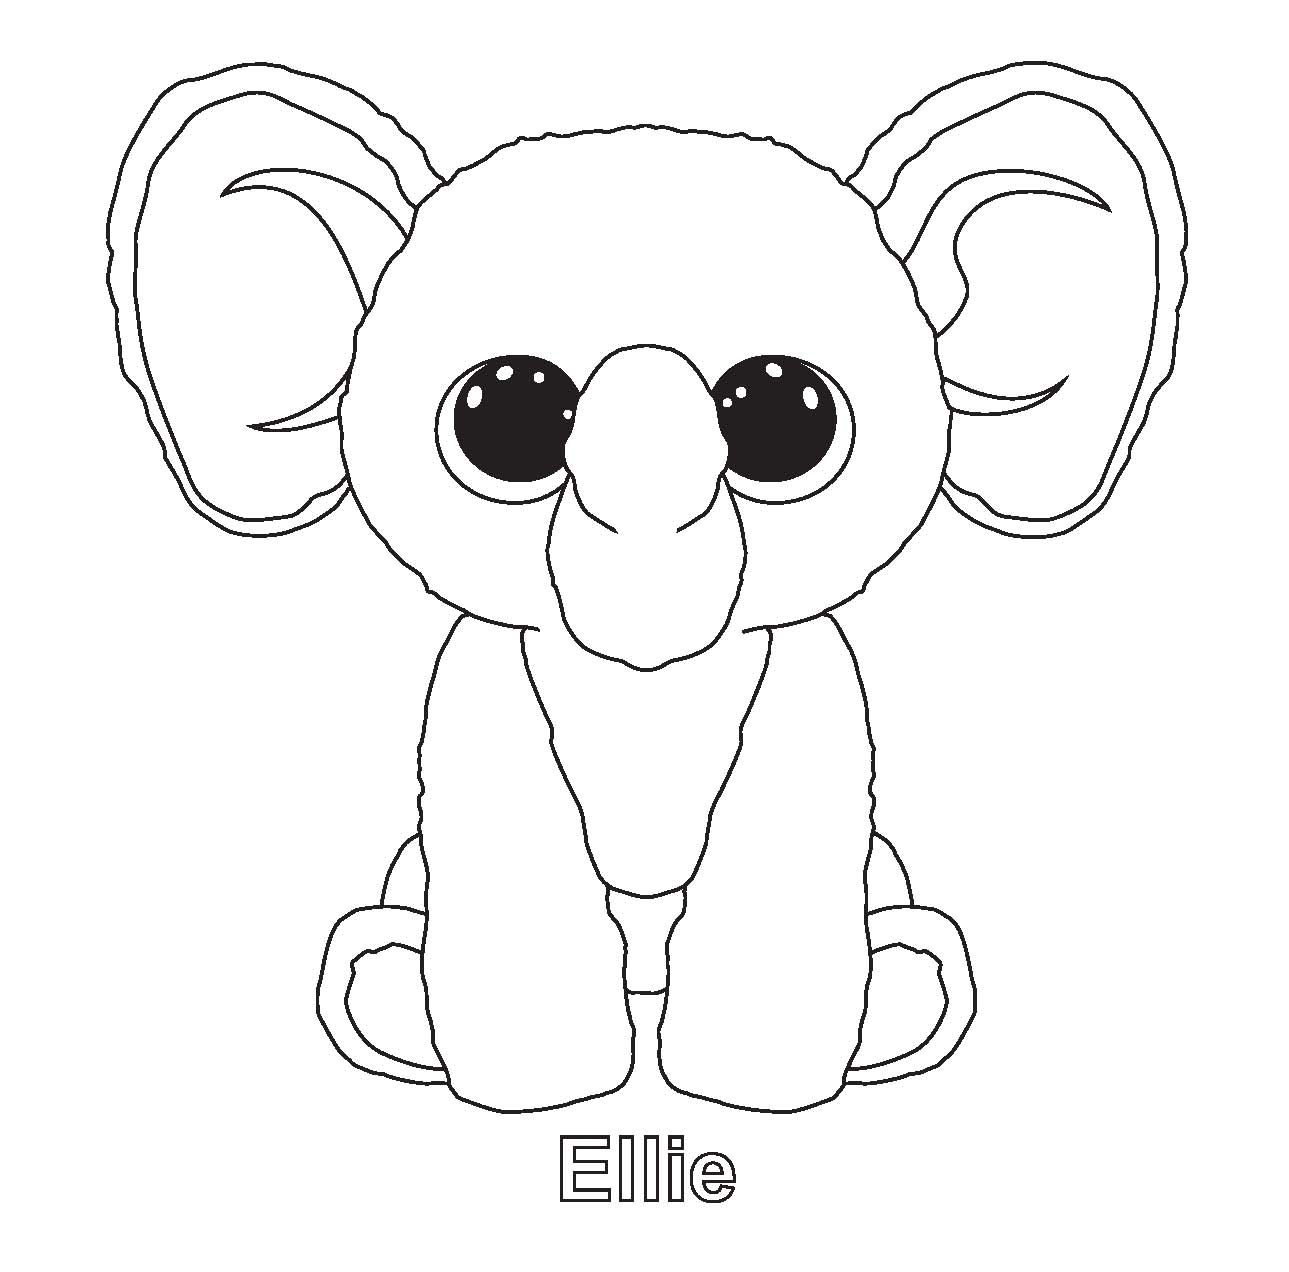 1289x1272 Opportunities Free Printable Beanie Boo Colori